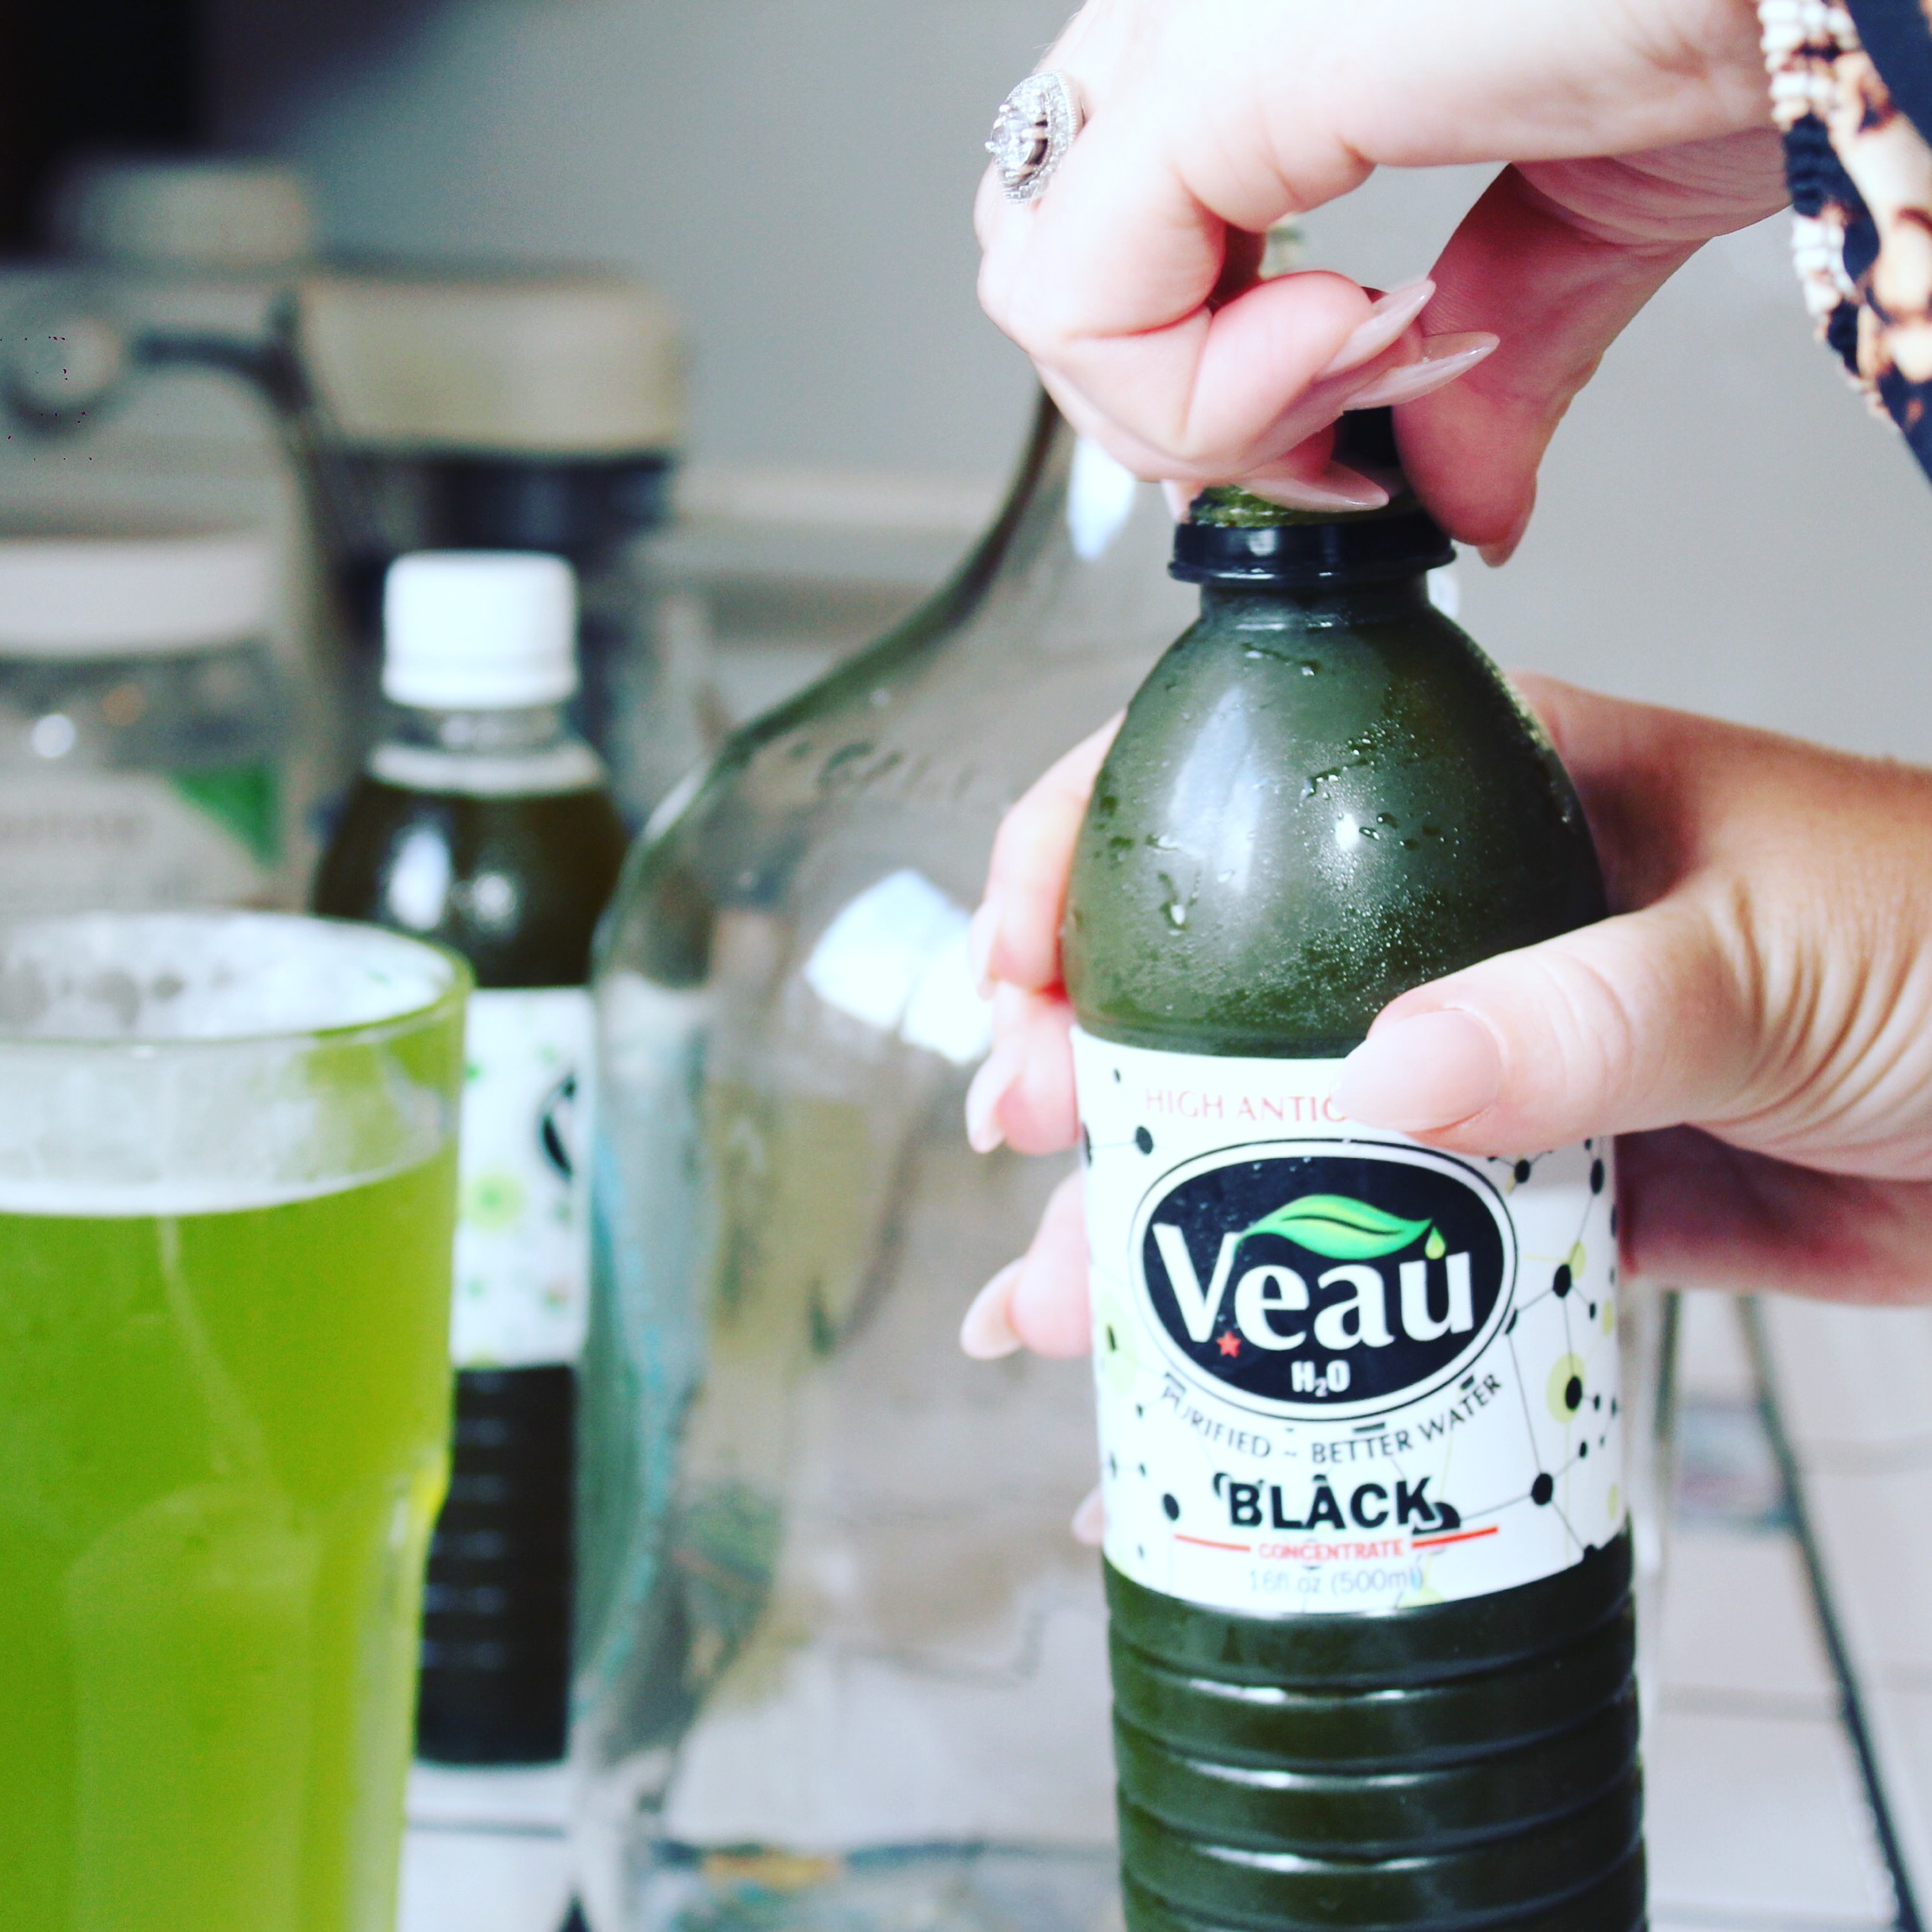 Veau Water - Healthy Green Drink